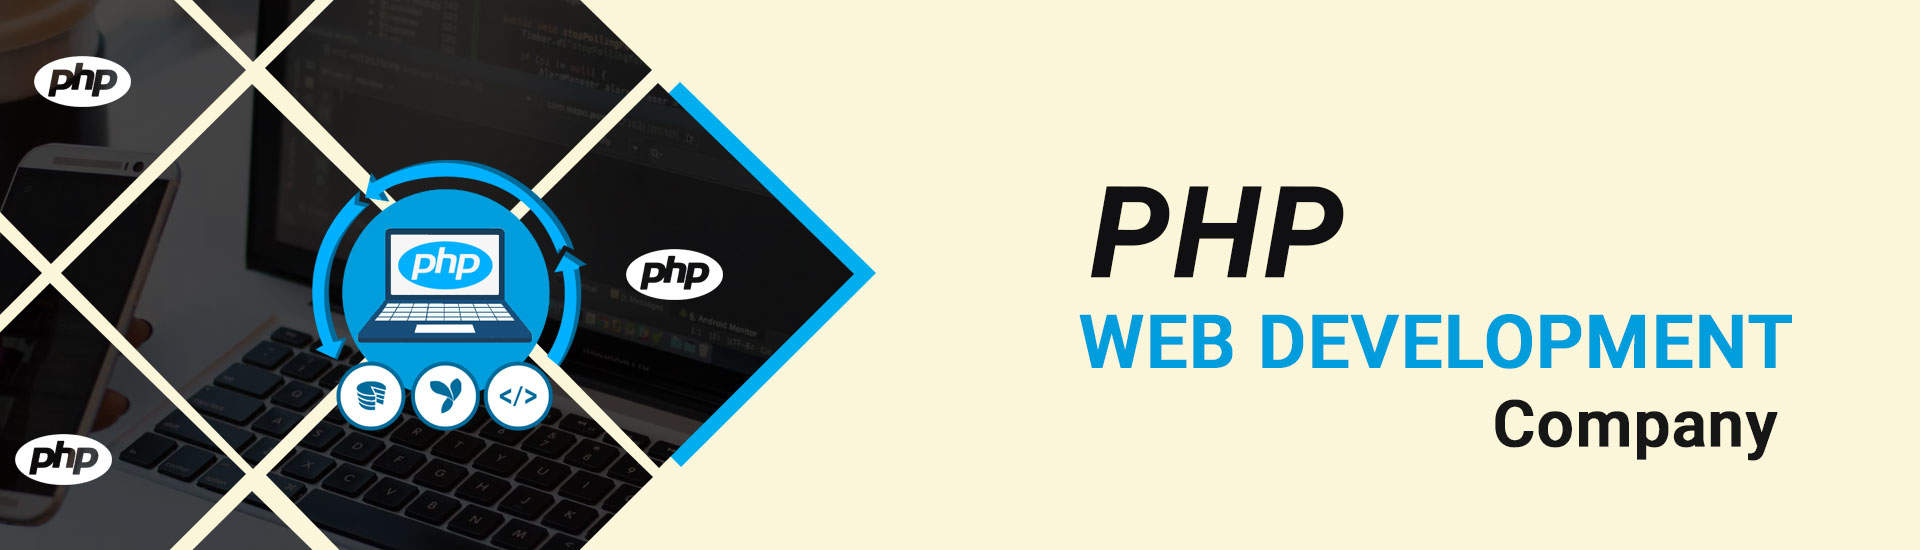 PHP Web Development Company Delhi India, PHP Developer Delhi NCR